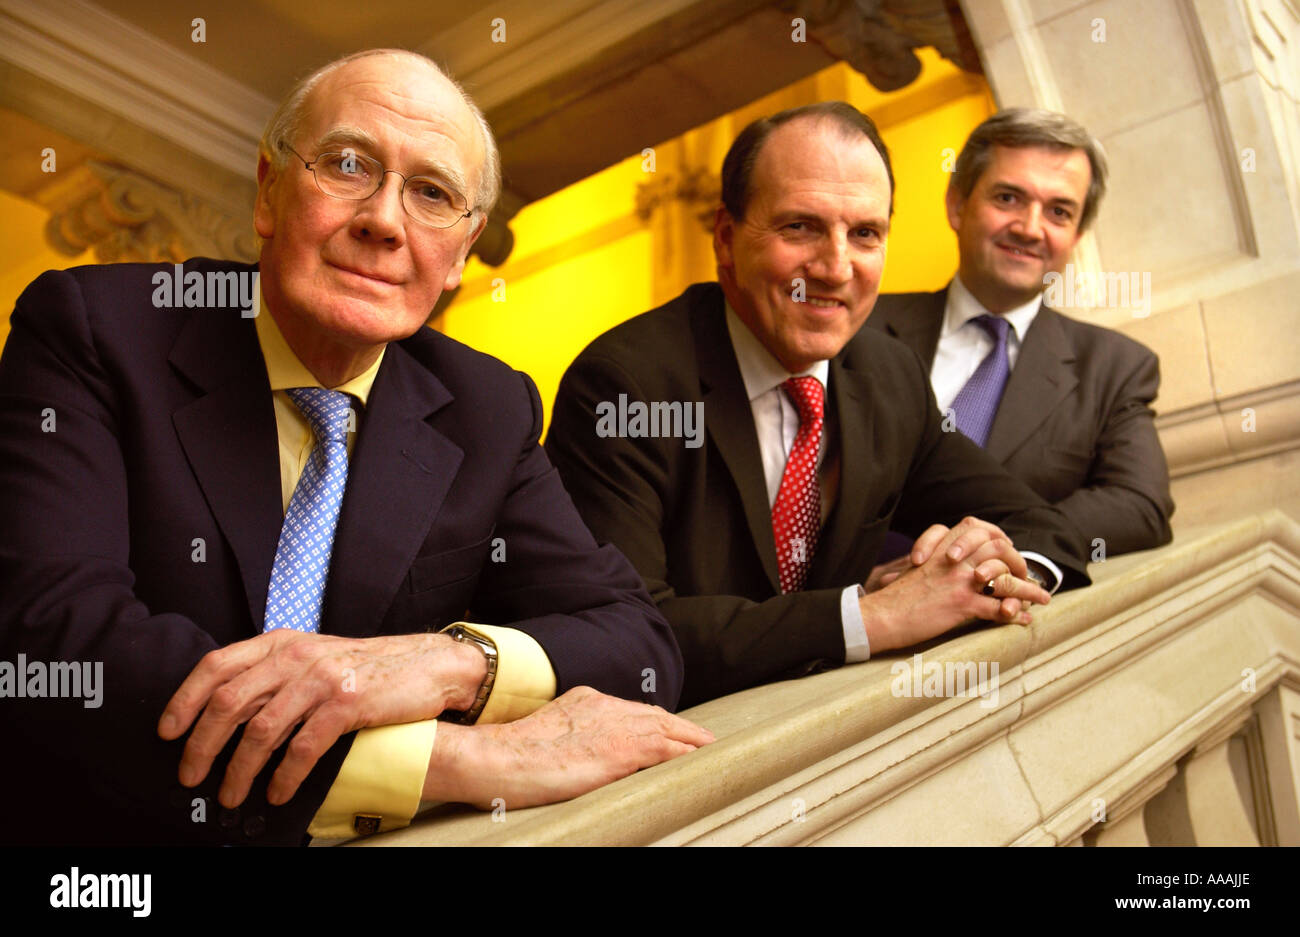 LIBERAL DEMOCRAT LEADERSHIP CONTENDERS L R SIR MENZIES CAMPBELL SIMON HUGHES AND CHRIS HUHNE - Stock Image